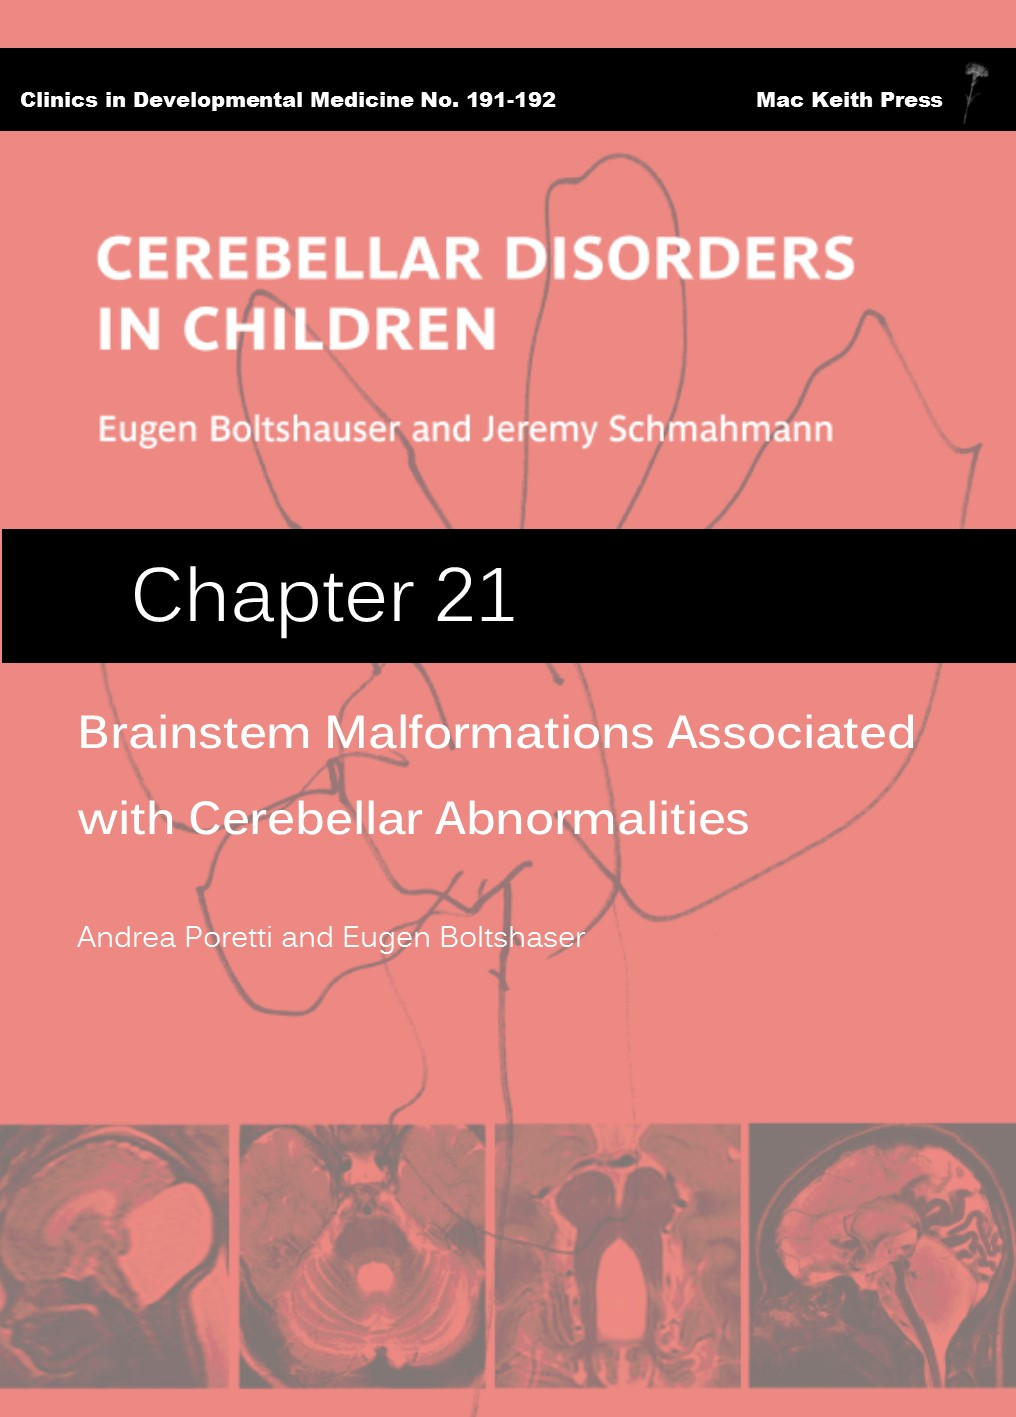 Brainstem Malformations Associated with Cerebellar Abnormalities- Cerebellar Disorders in Children (Chapter 21) COVER